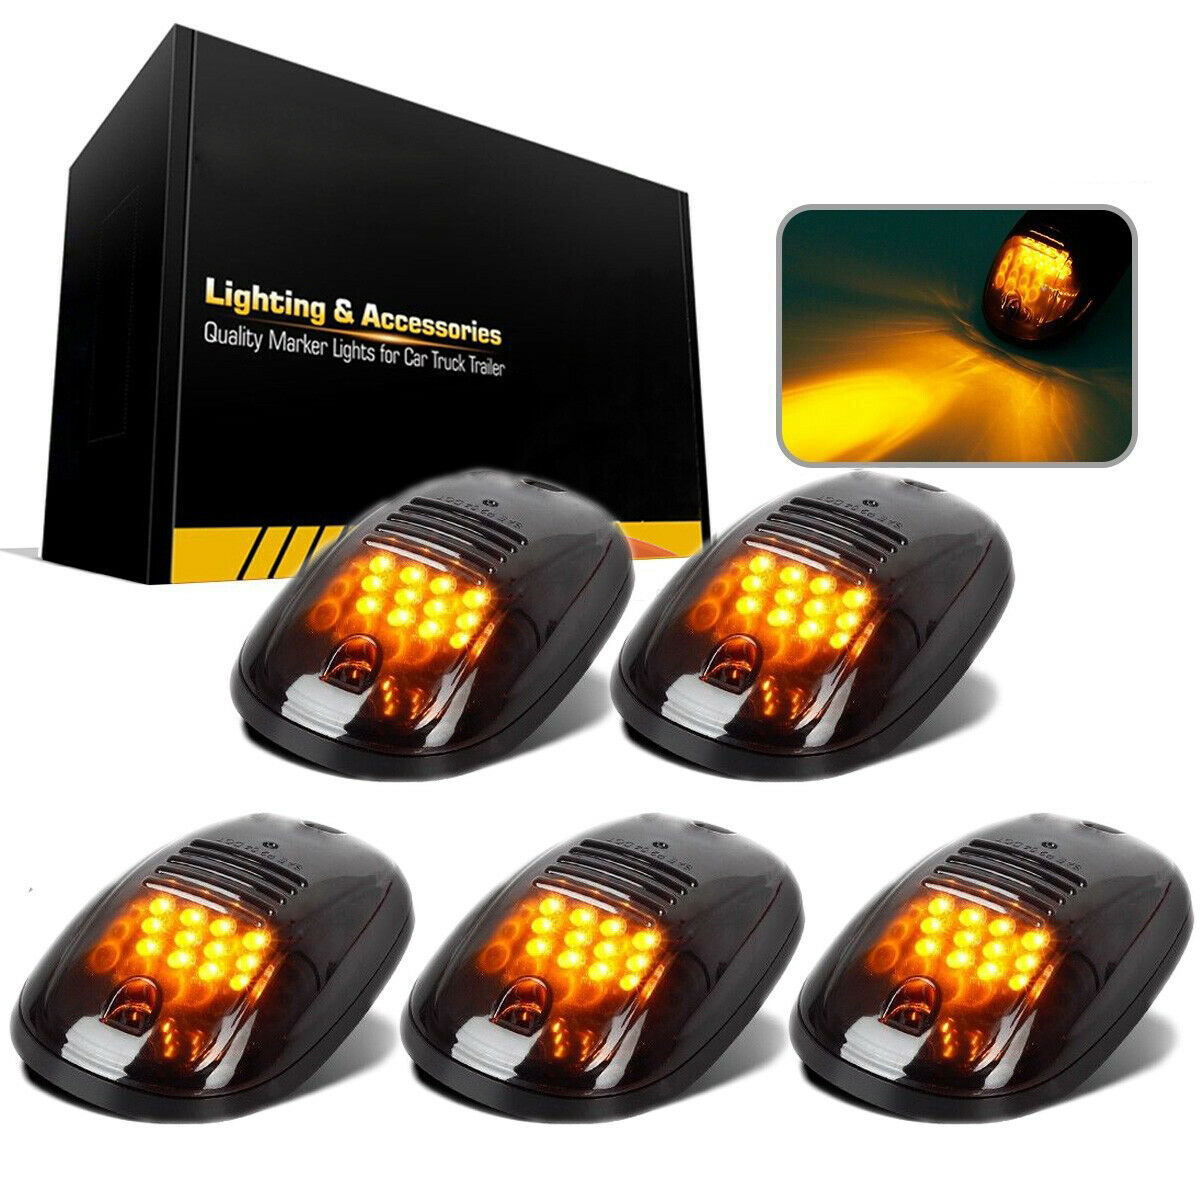 5Pcs Smoked 12 LED Cab Roof Running Clearance Marker Light Assembly Amber For Dodge Ram Truck Light System